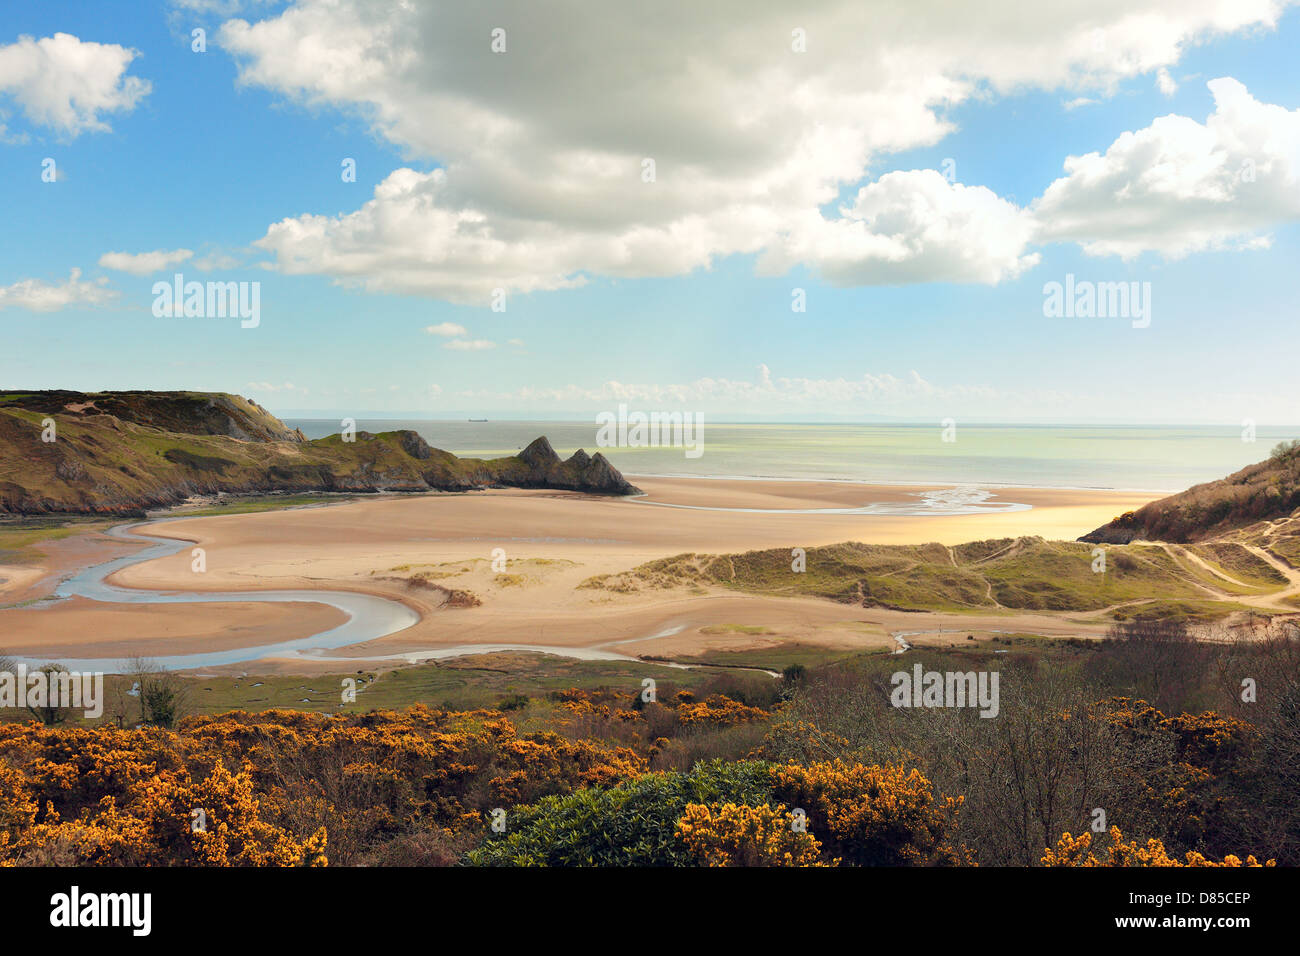 A view of Three Cliffs Bay on the Gower Peninsula in South Wales, UK - Stock Image